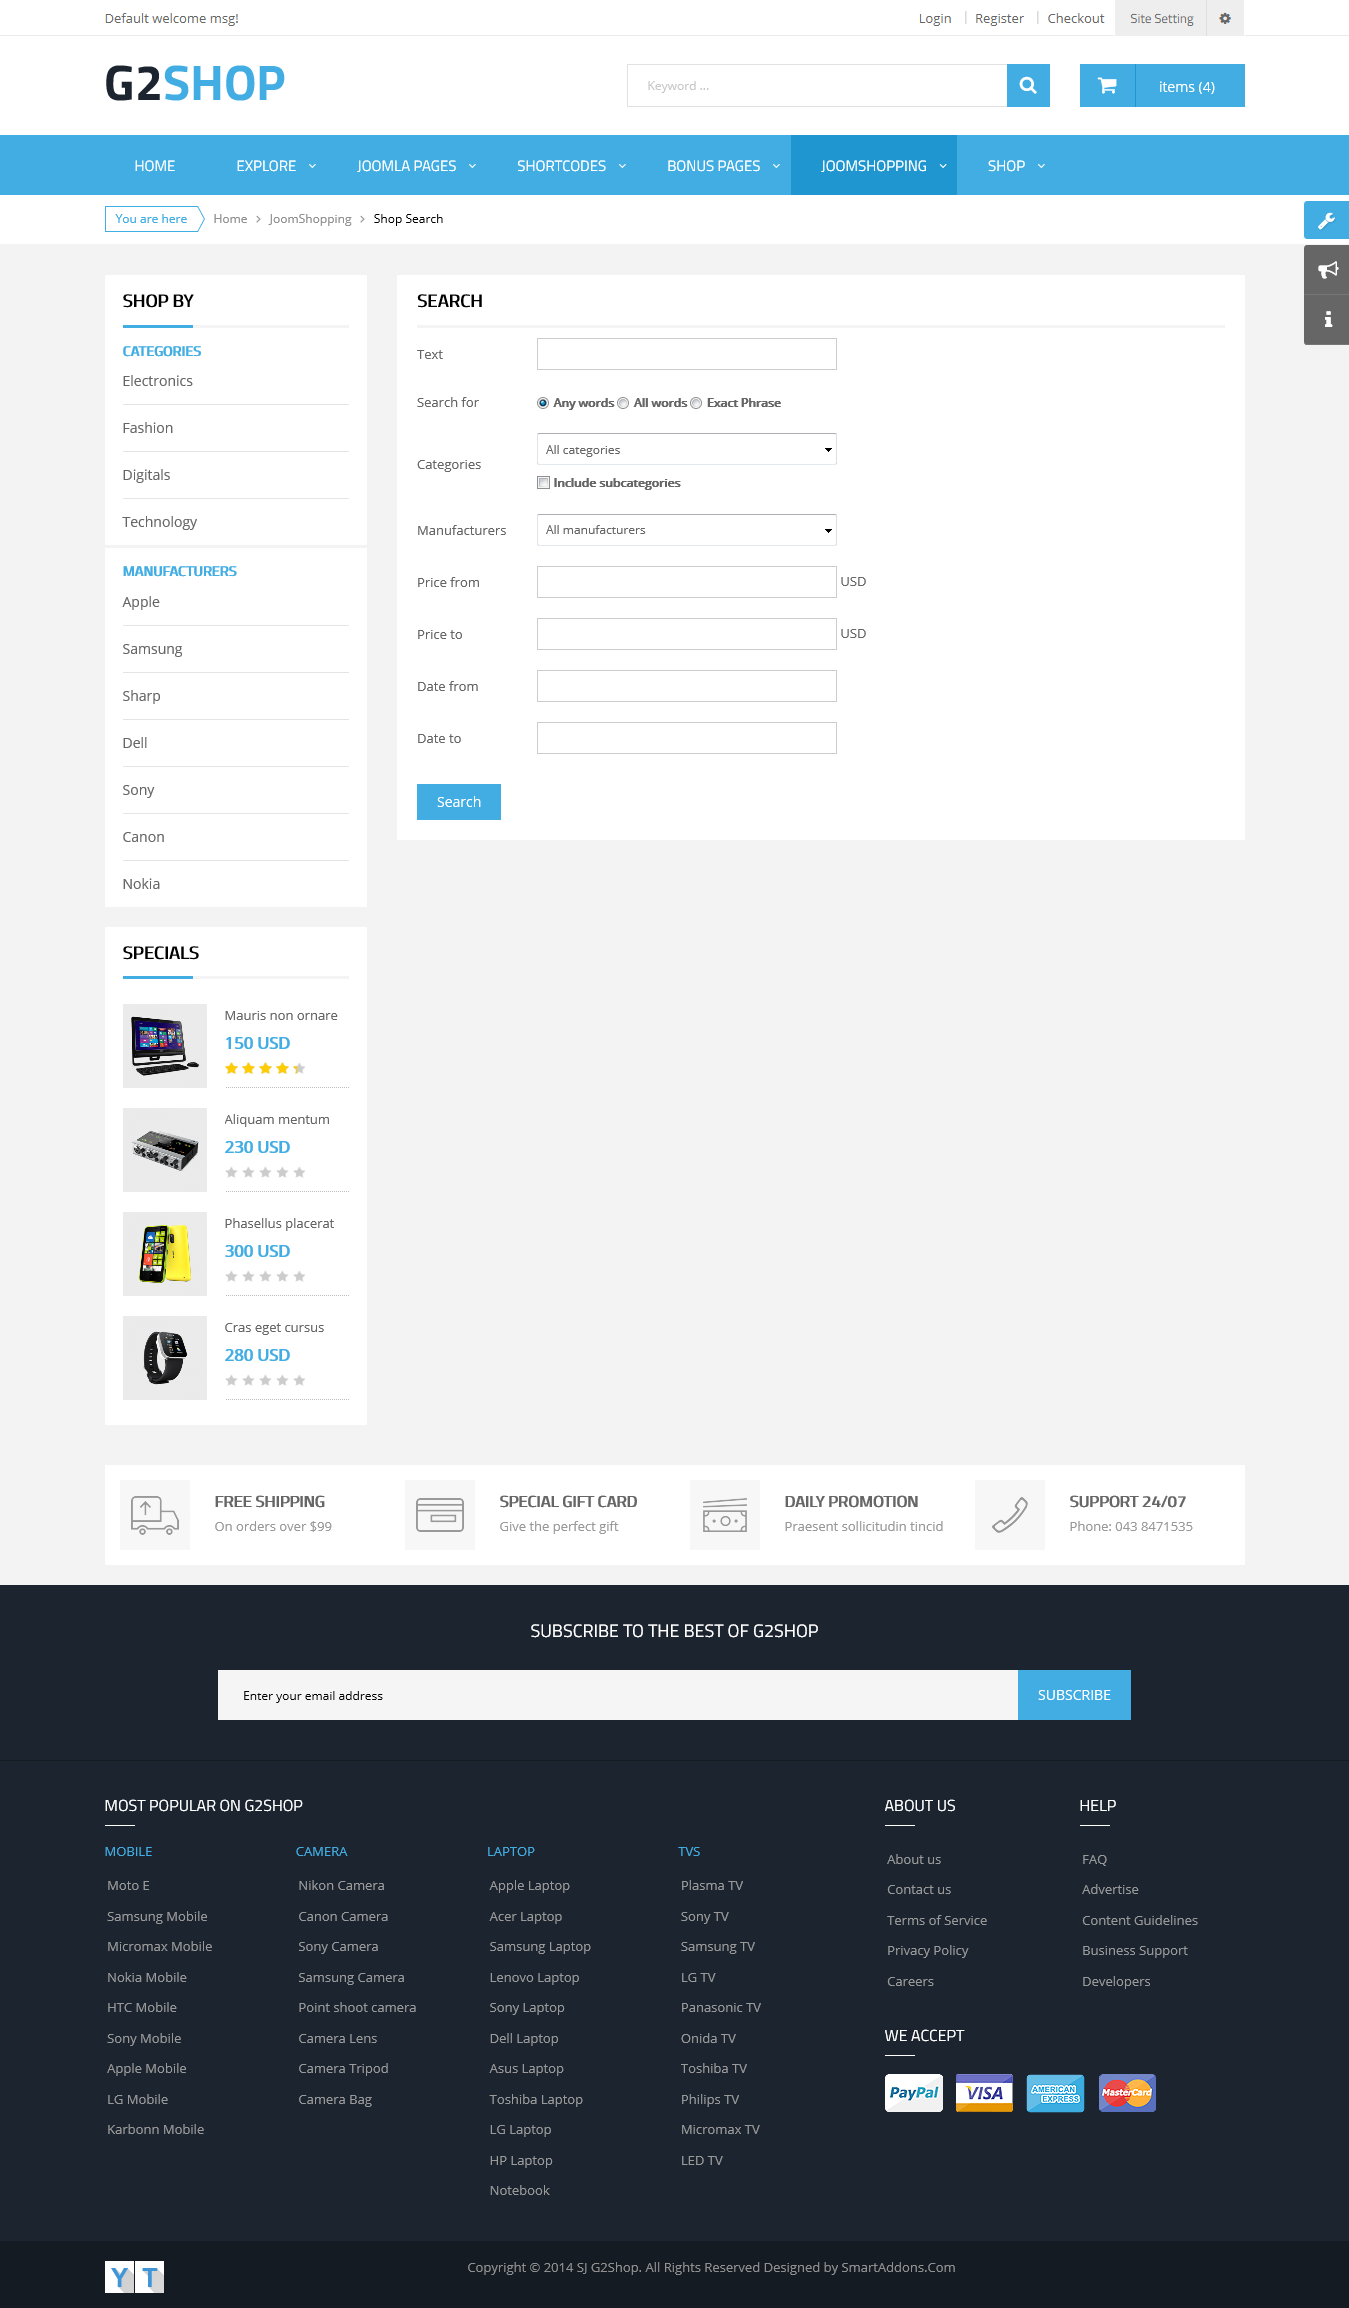 SJ G2Shop - Responsive Joomla eCommerce Template - 07_shop_advance_search.png